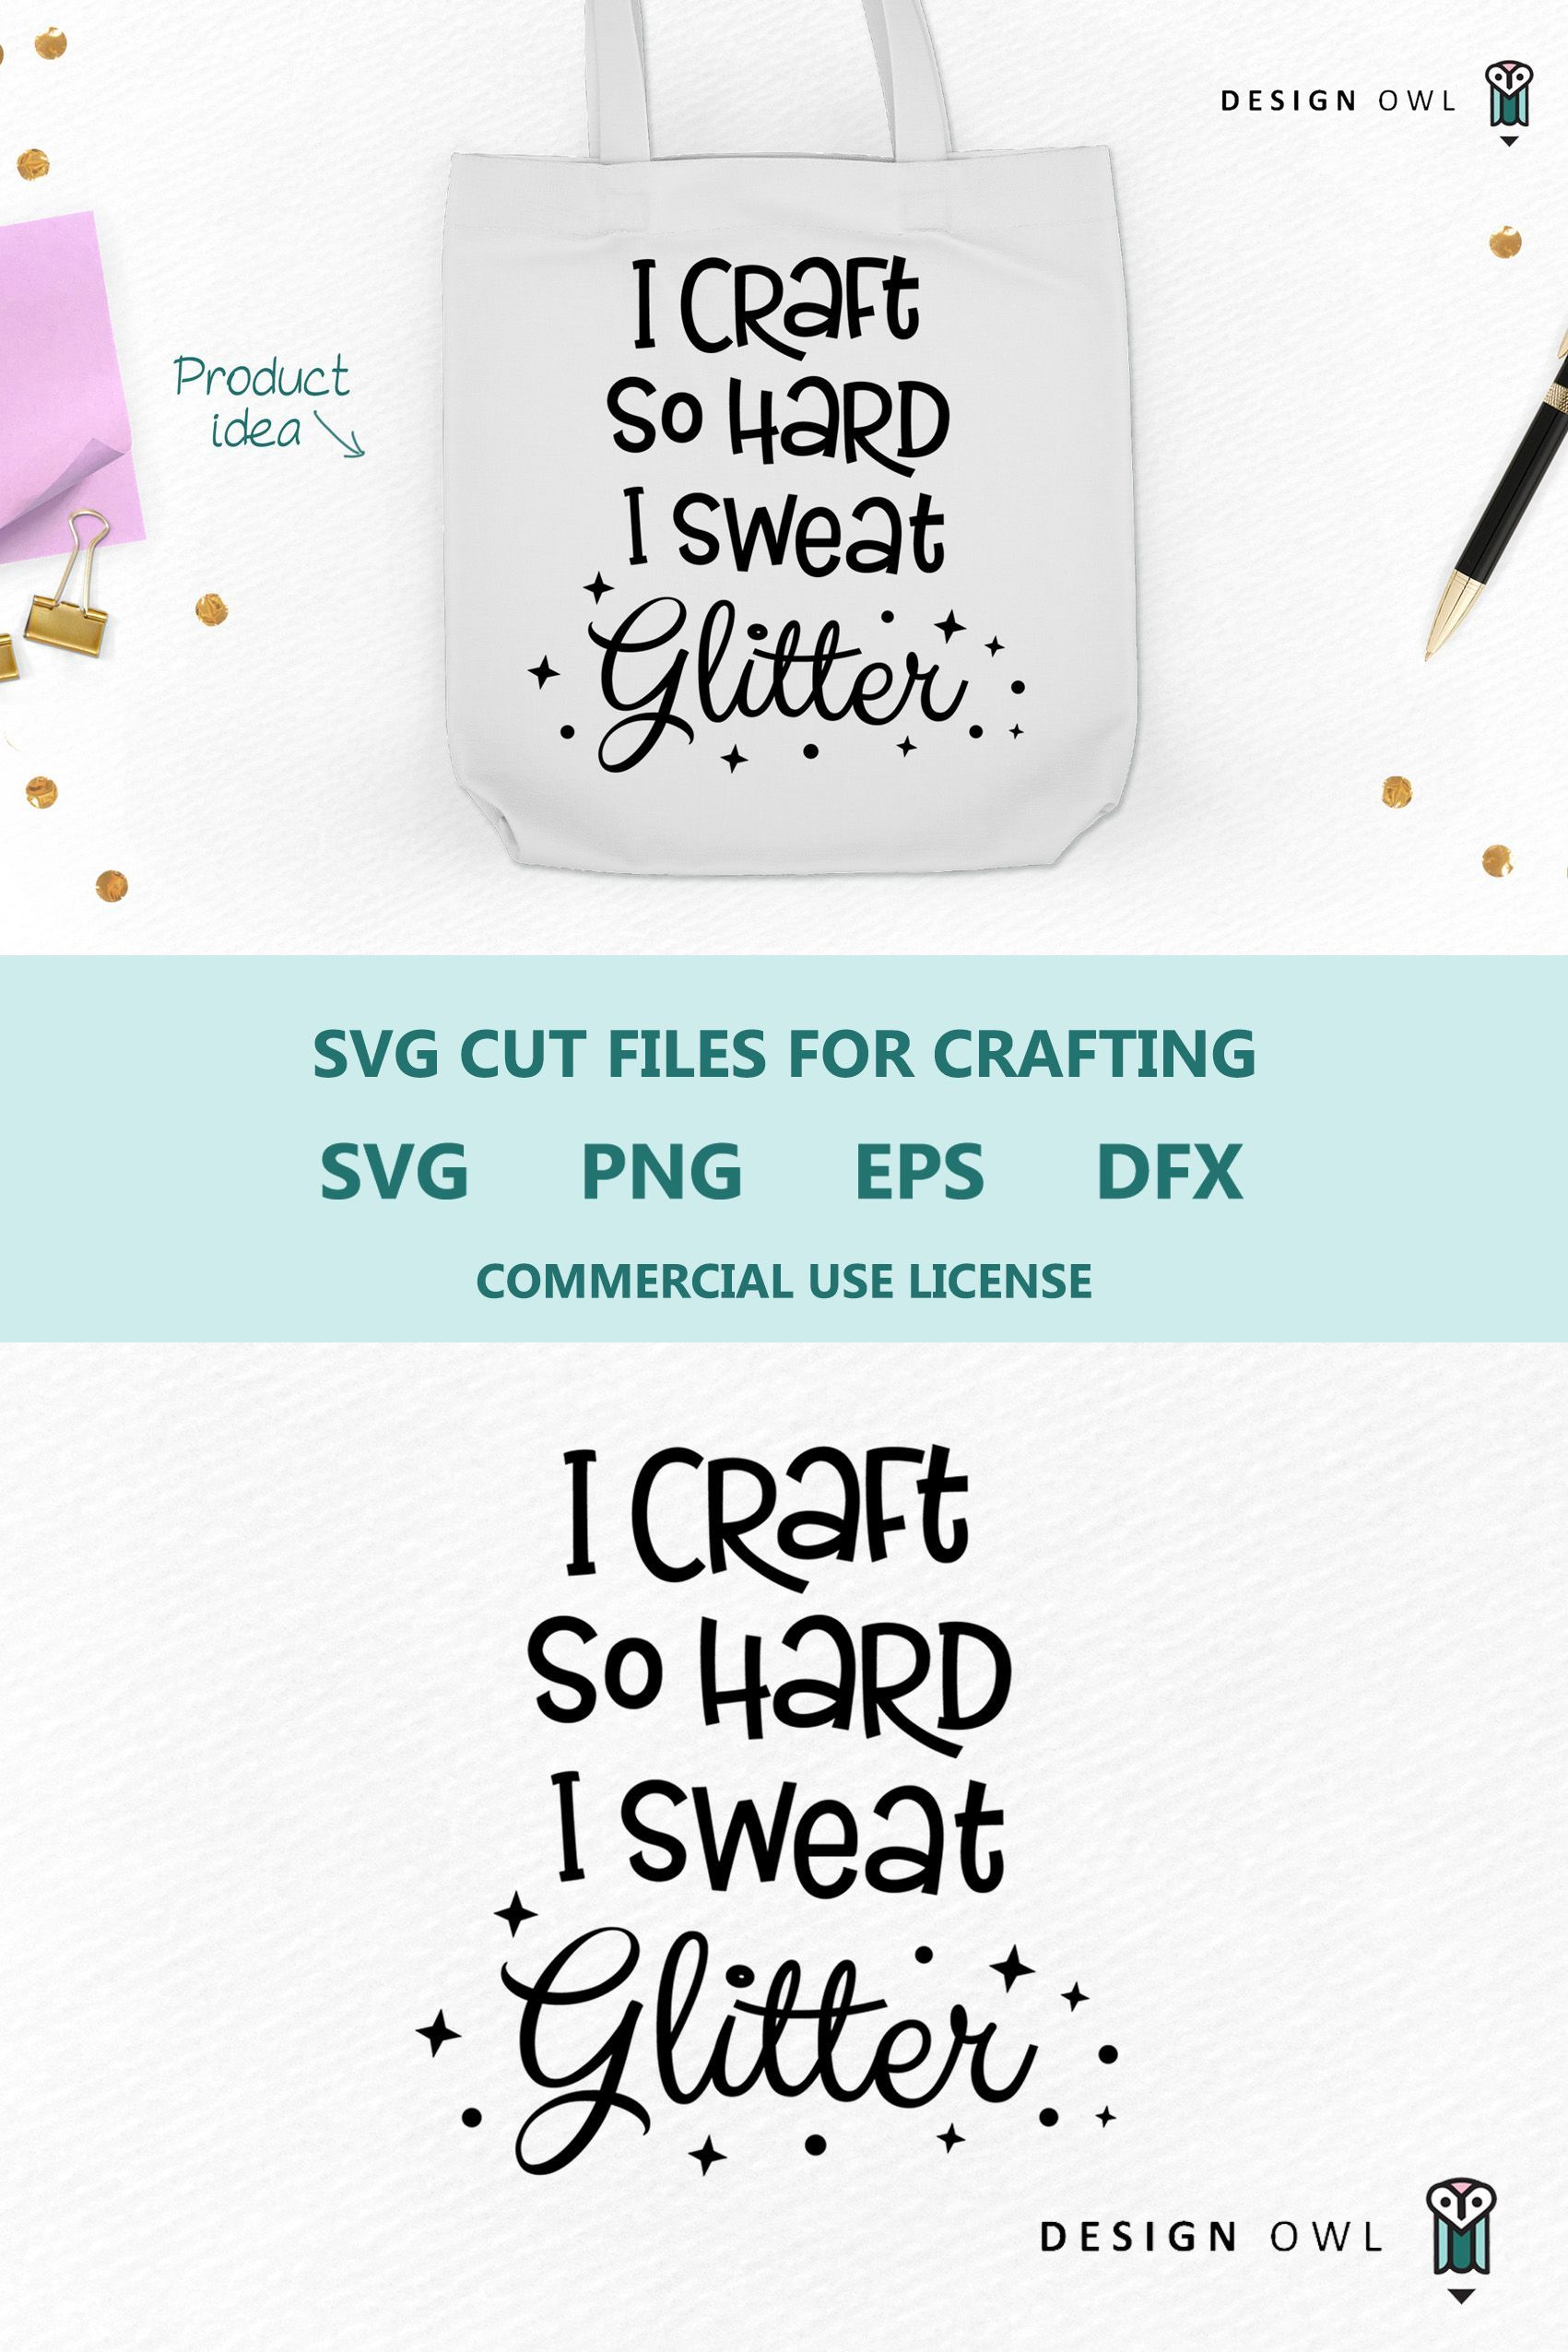 I Craft So Hard I Sweat Glitter Funny Craft Svg File Tote Bag By Design Owl Affiliate Link In 2020 Craft Quotes Svg Svg Quotes